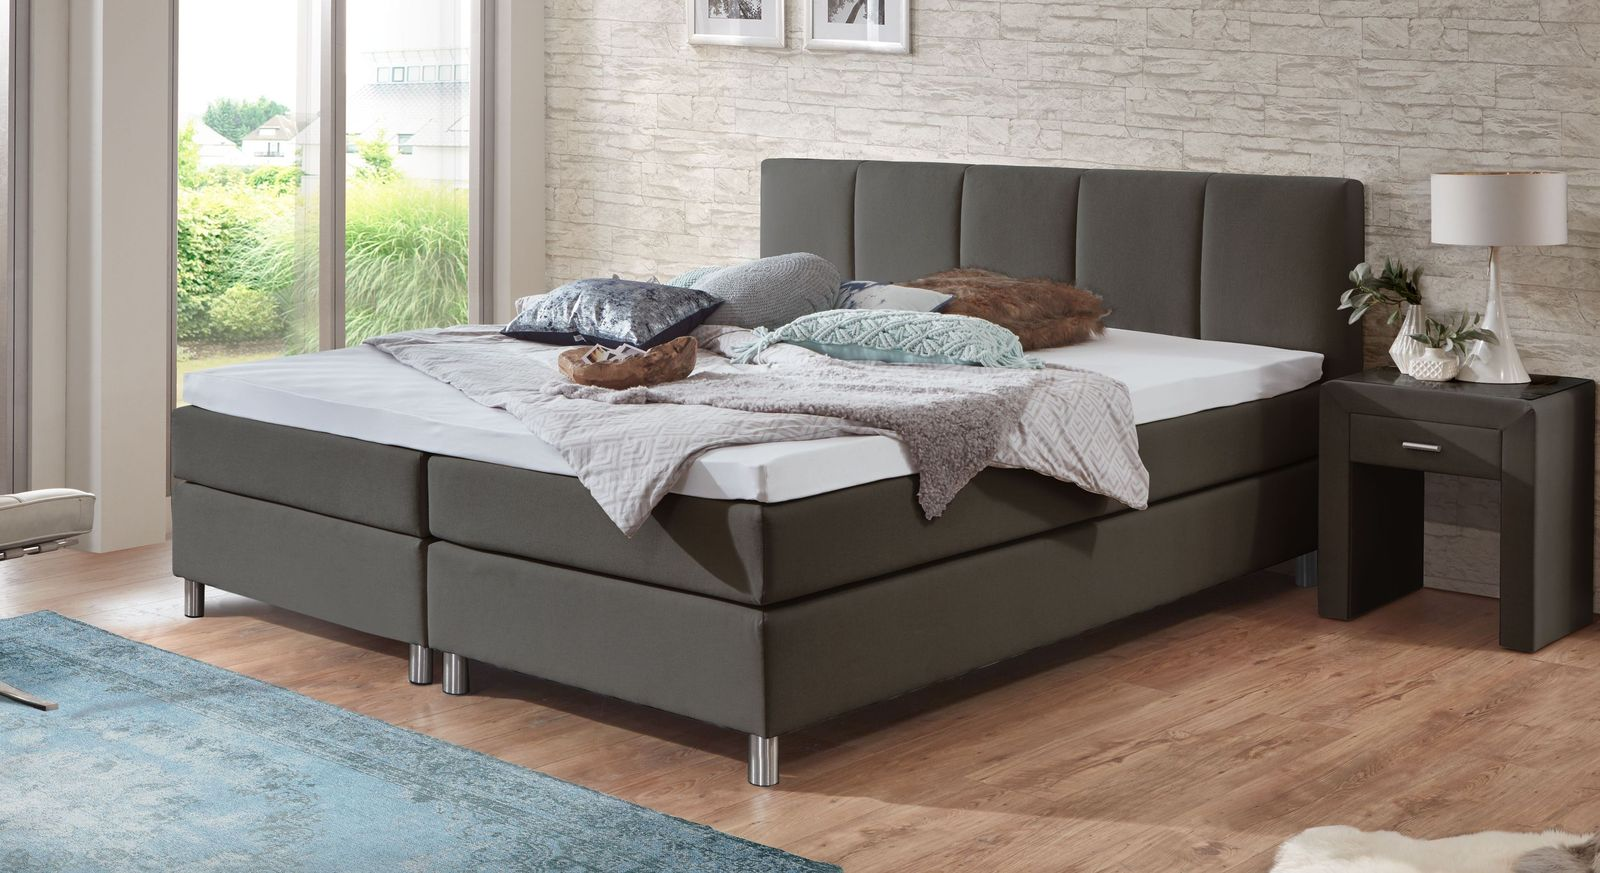 53 cm hohes Boxspringbett Rockford aus anthrazitfarbenem Webstoff